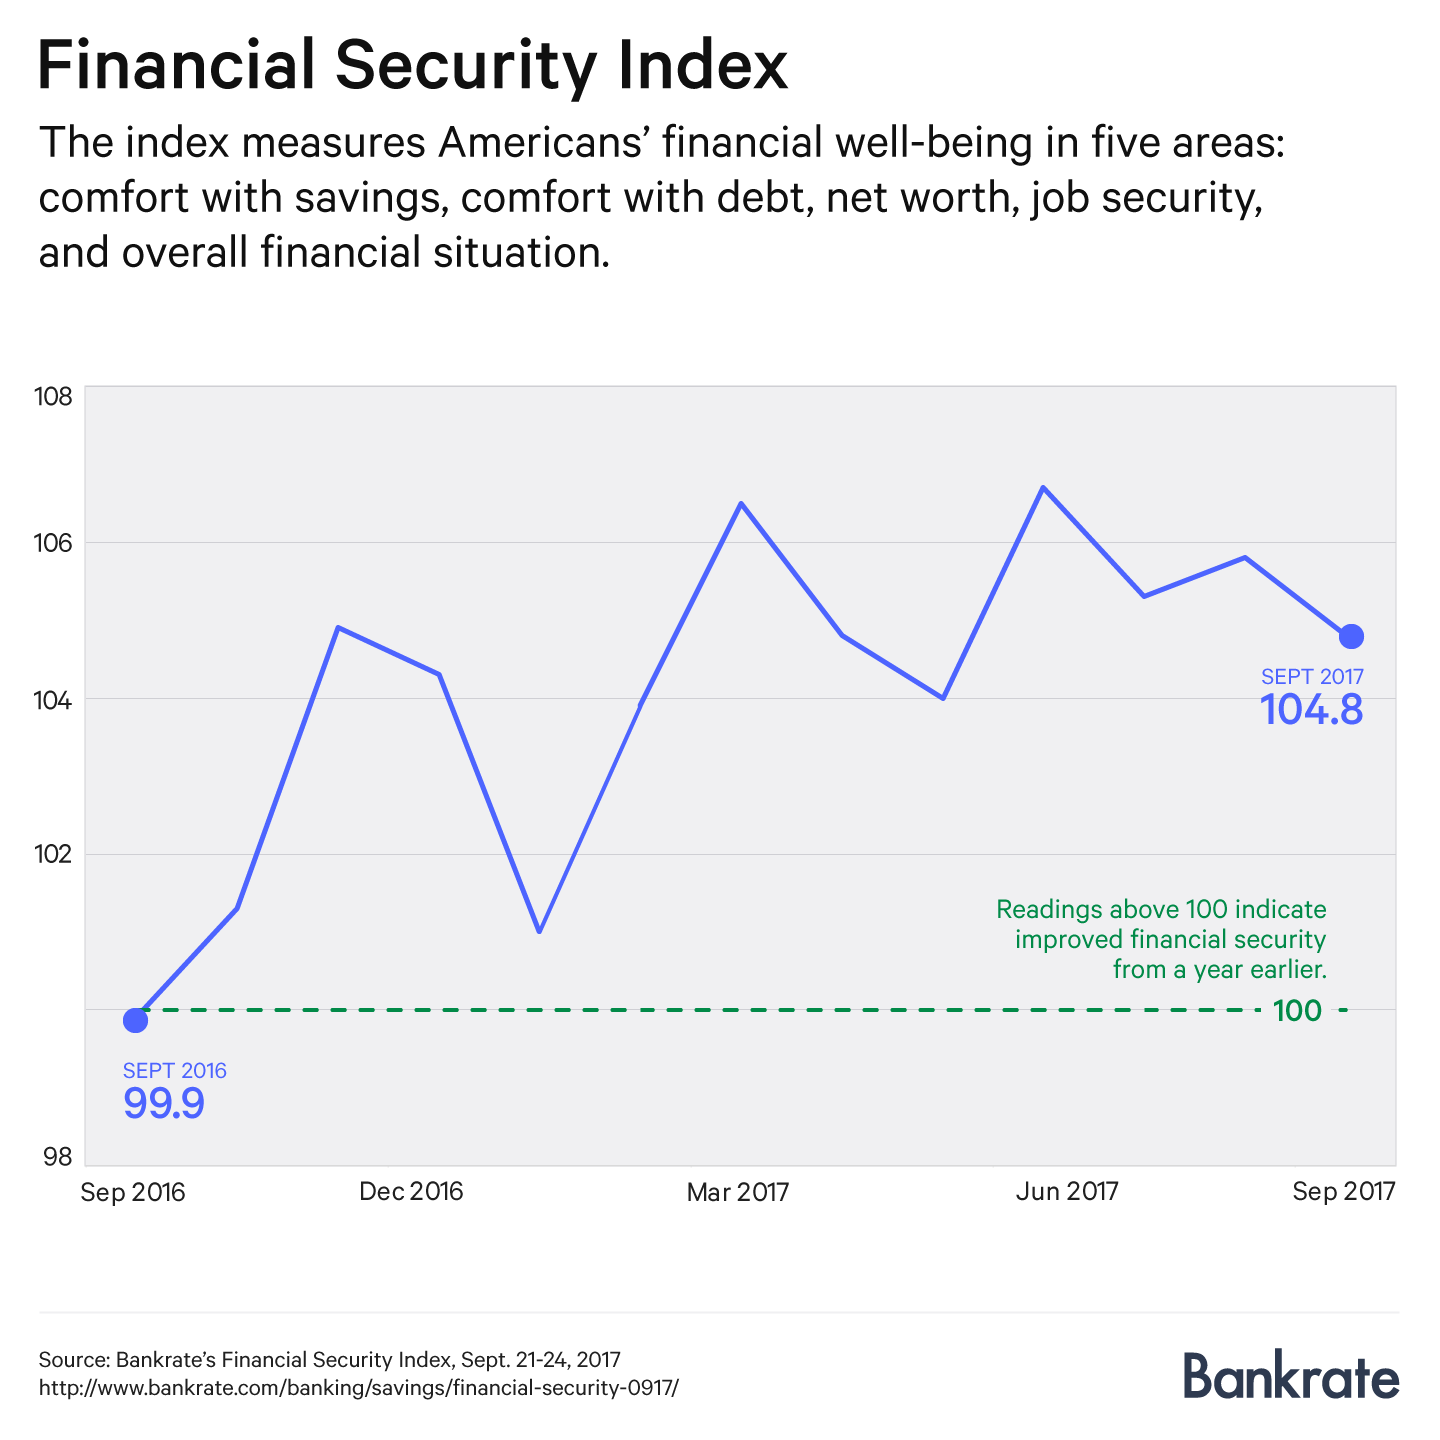 Financial Security Index, September 2017